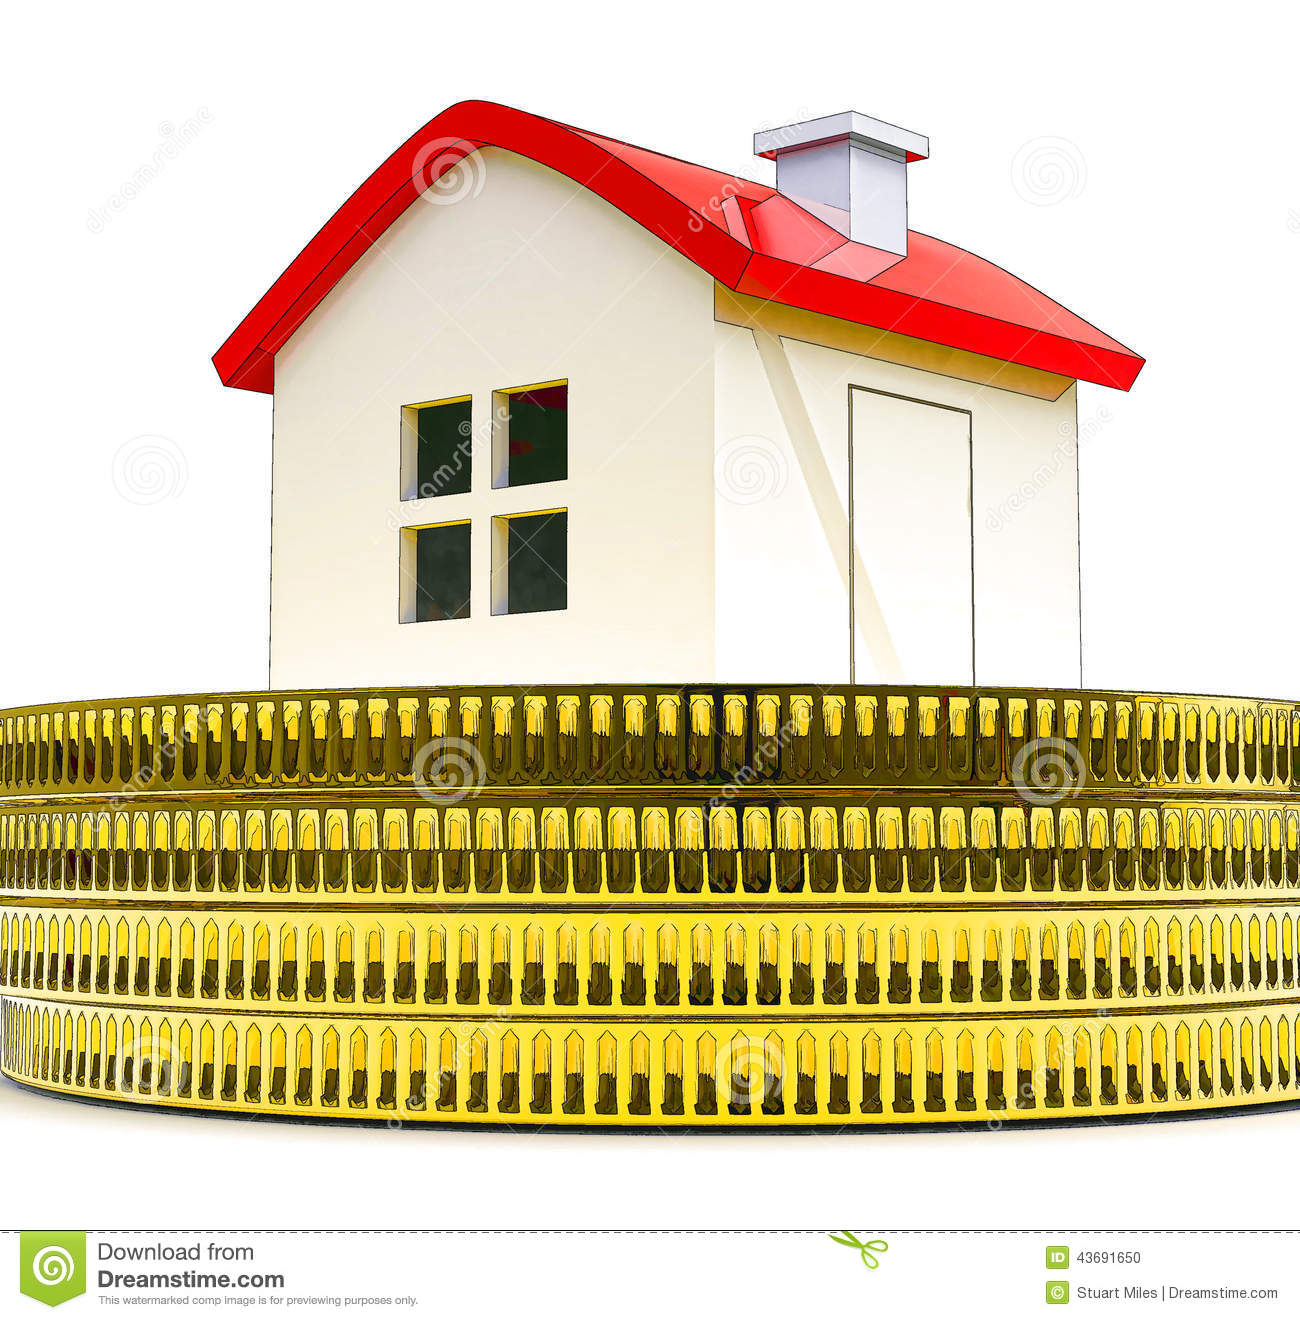 loan for house purchase